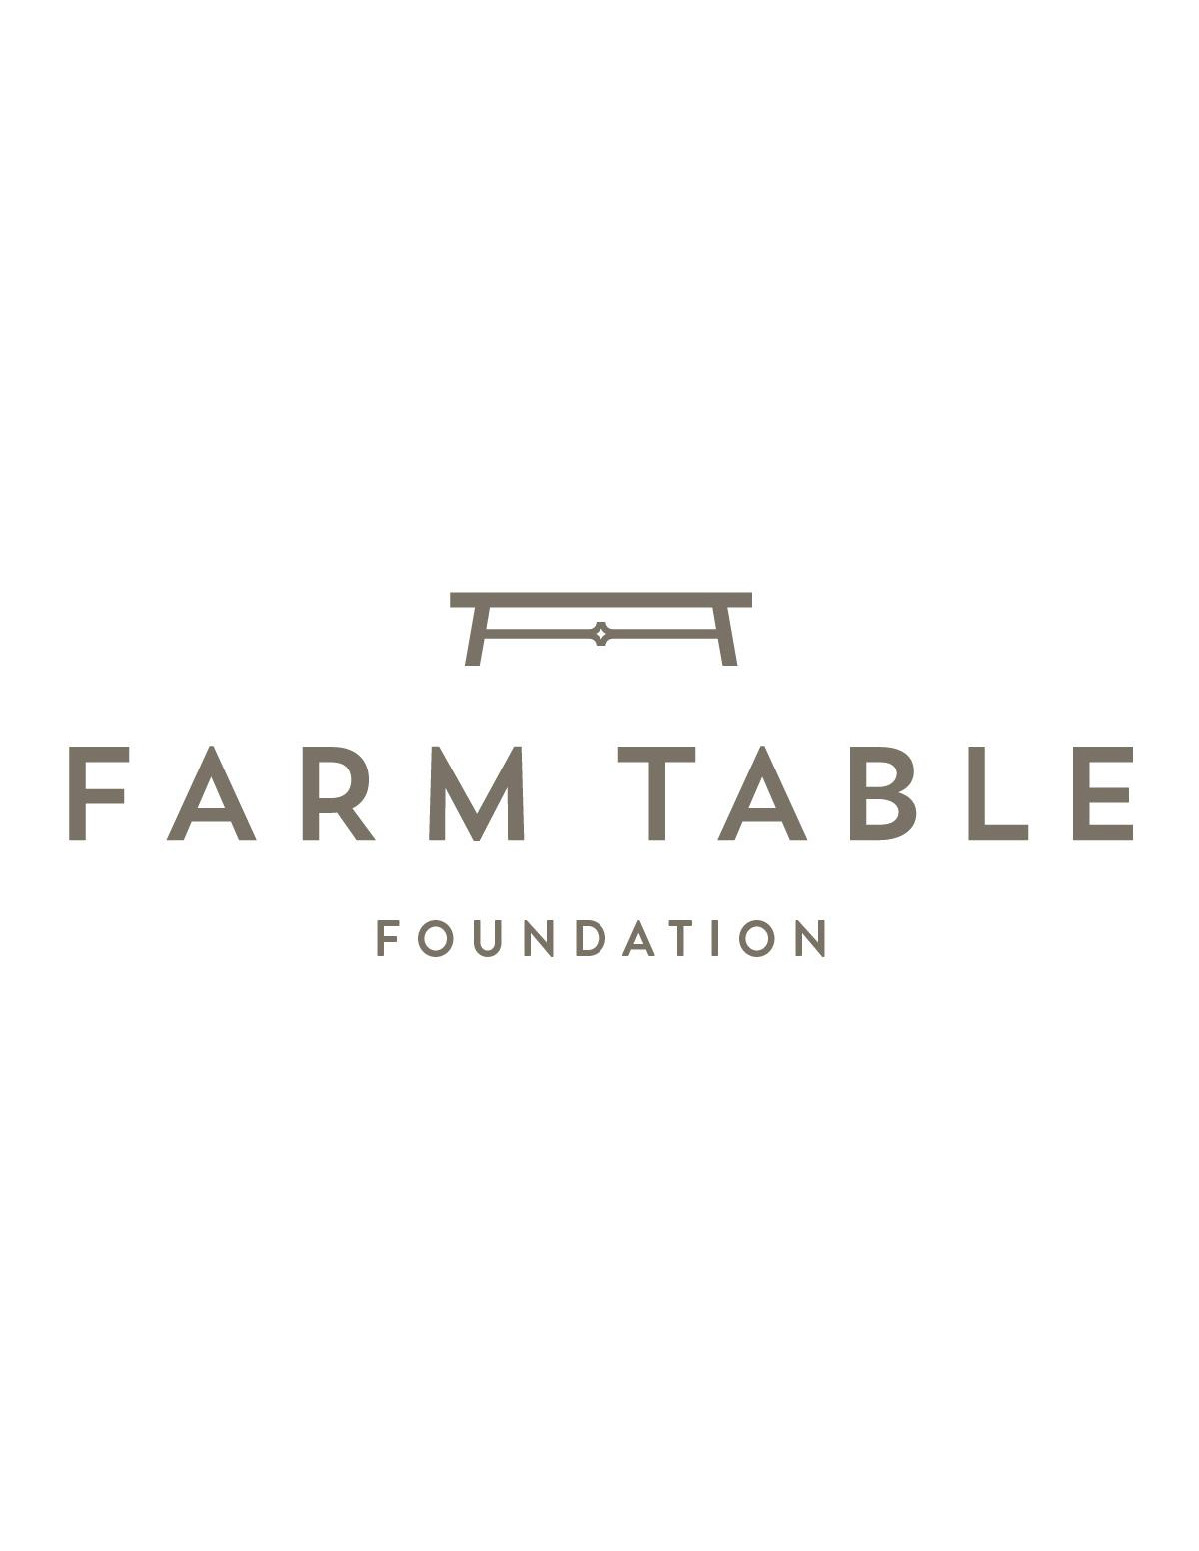 Farm Table Foundation image